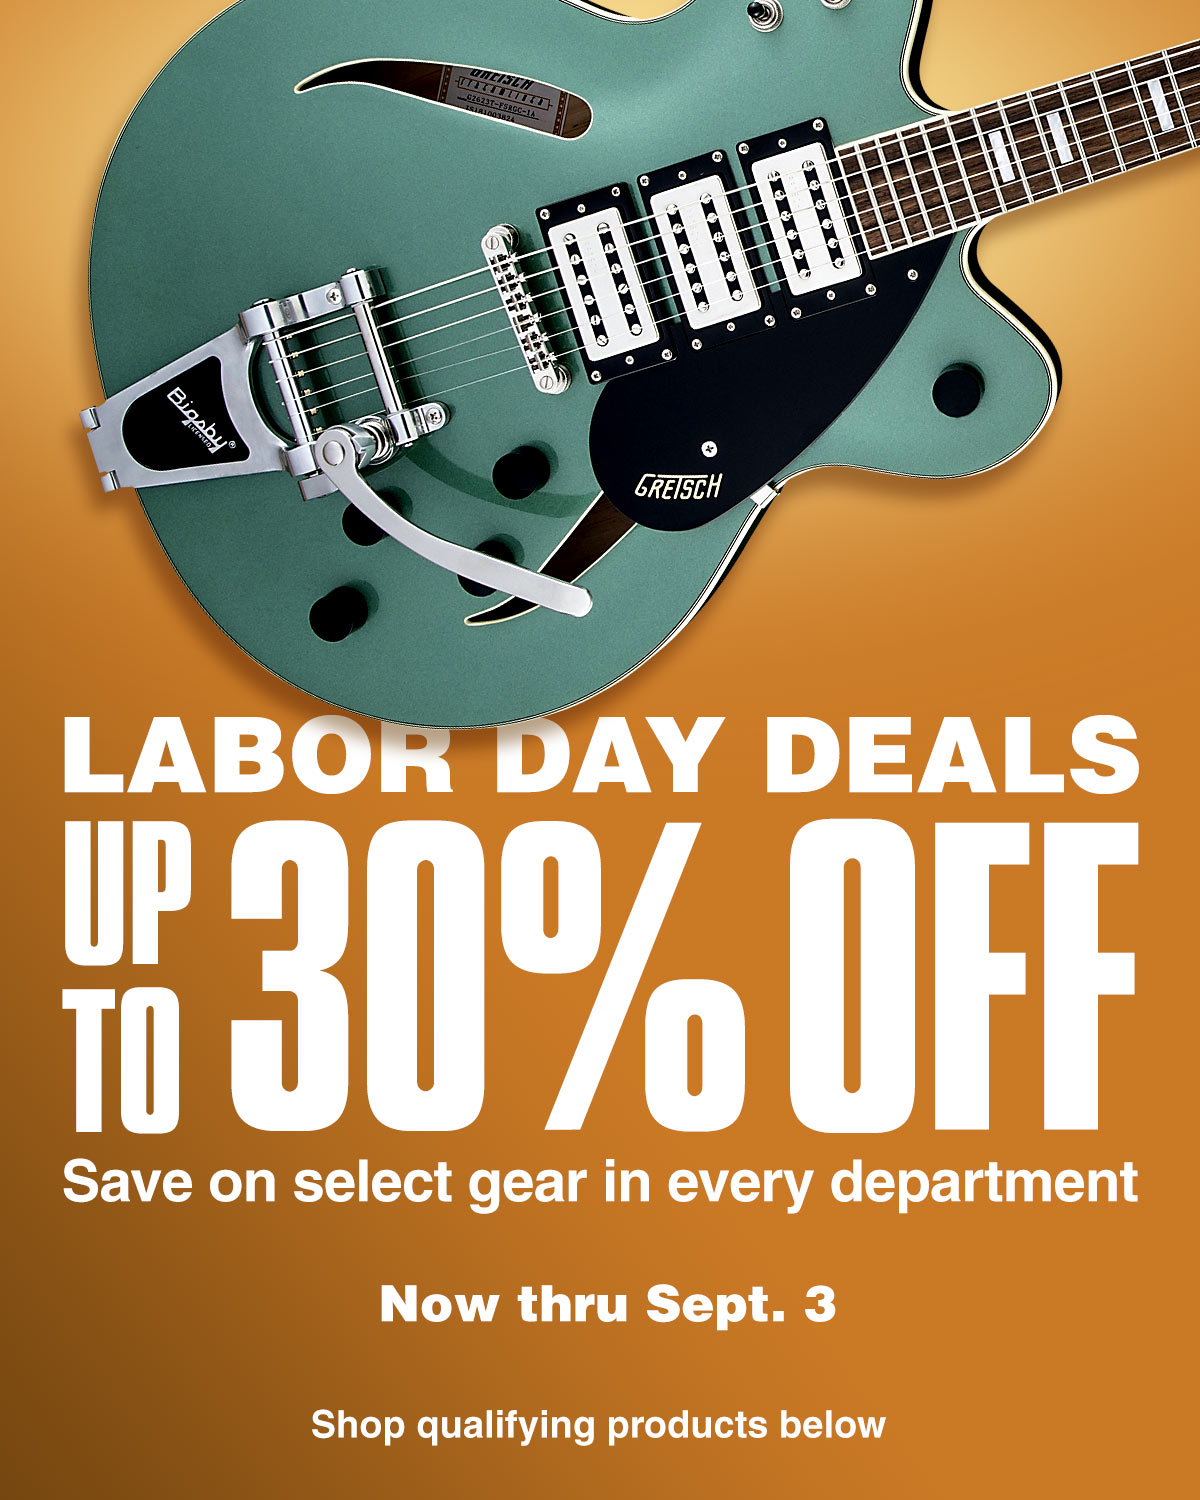 Labor Day Deals. Up to 30 percent off. Save on select gear in every department. Now thru September 3. Shop qualifying products below.